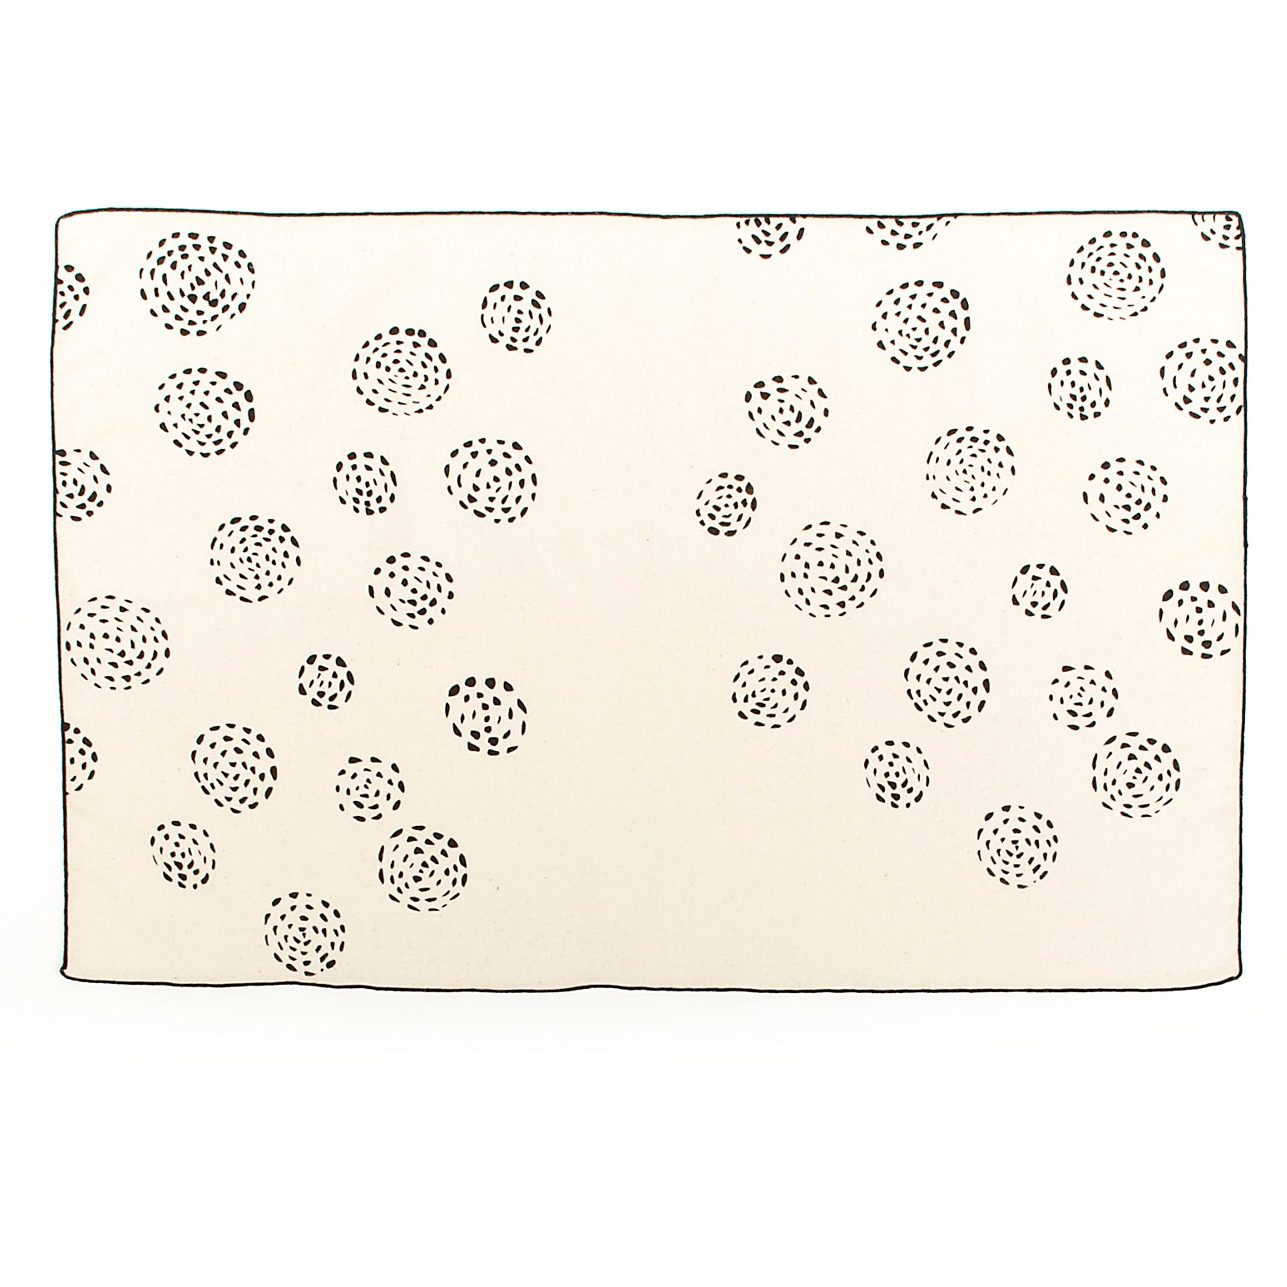 Artisan, Eco-Friendly, Designer Blooming Dots Tea Towel